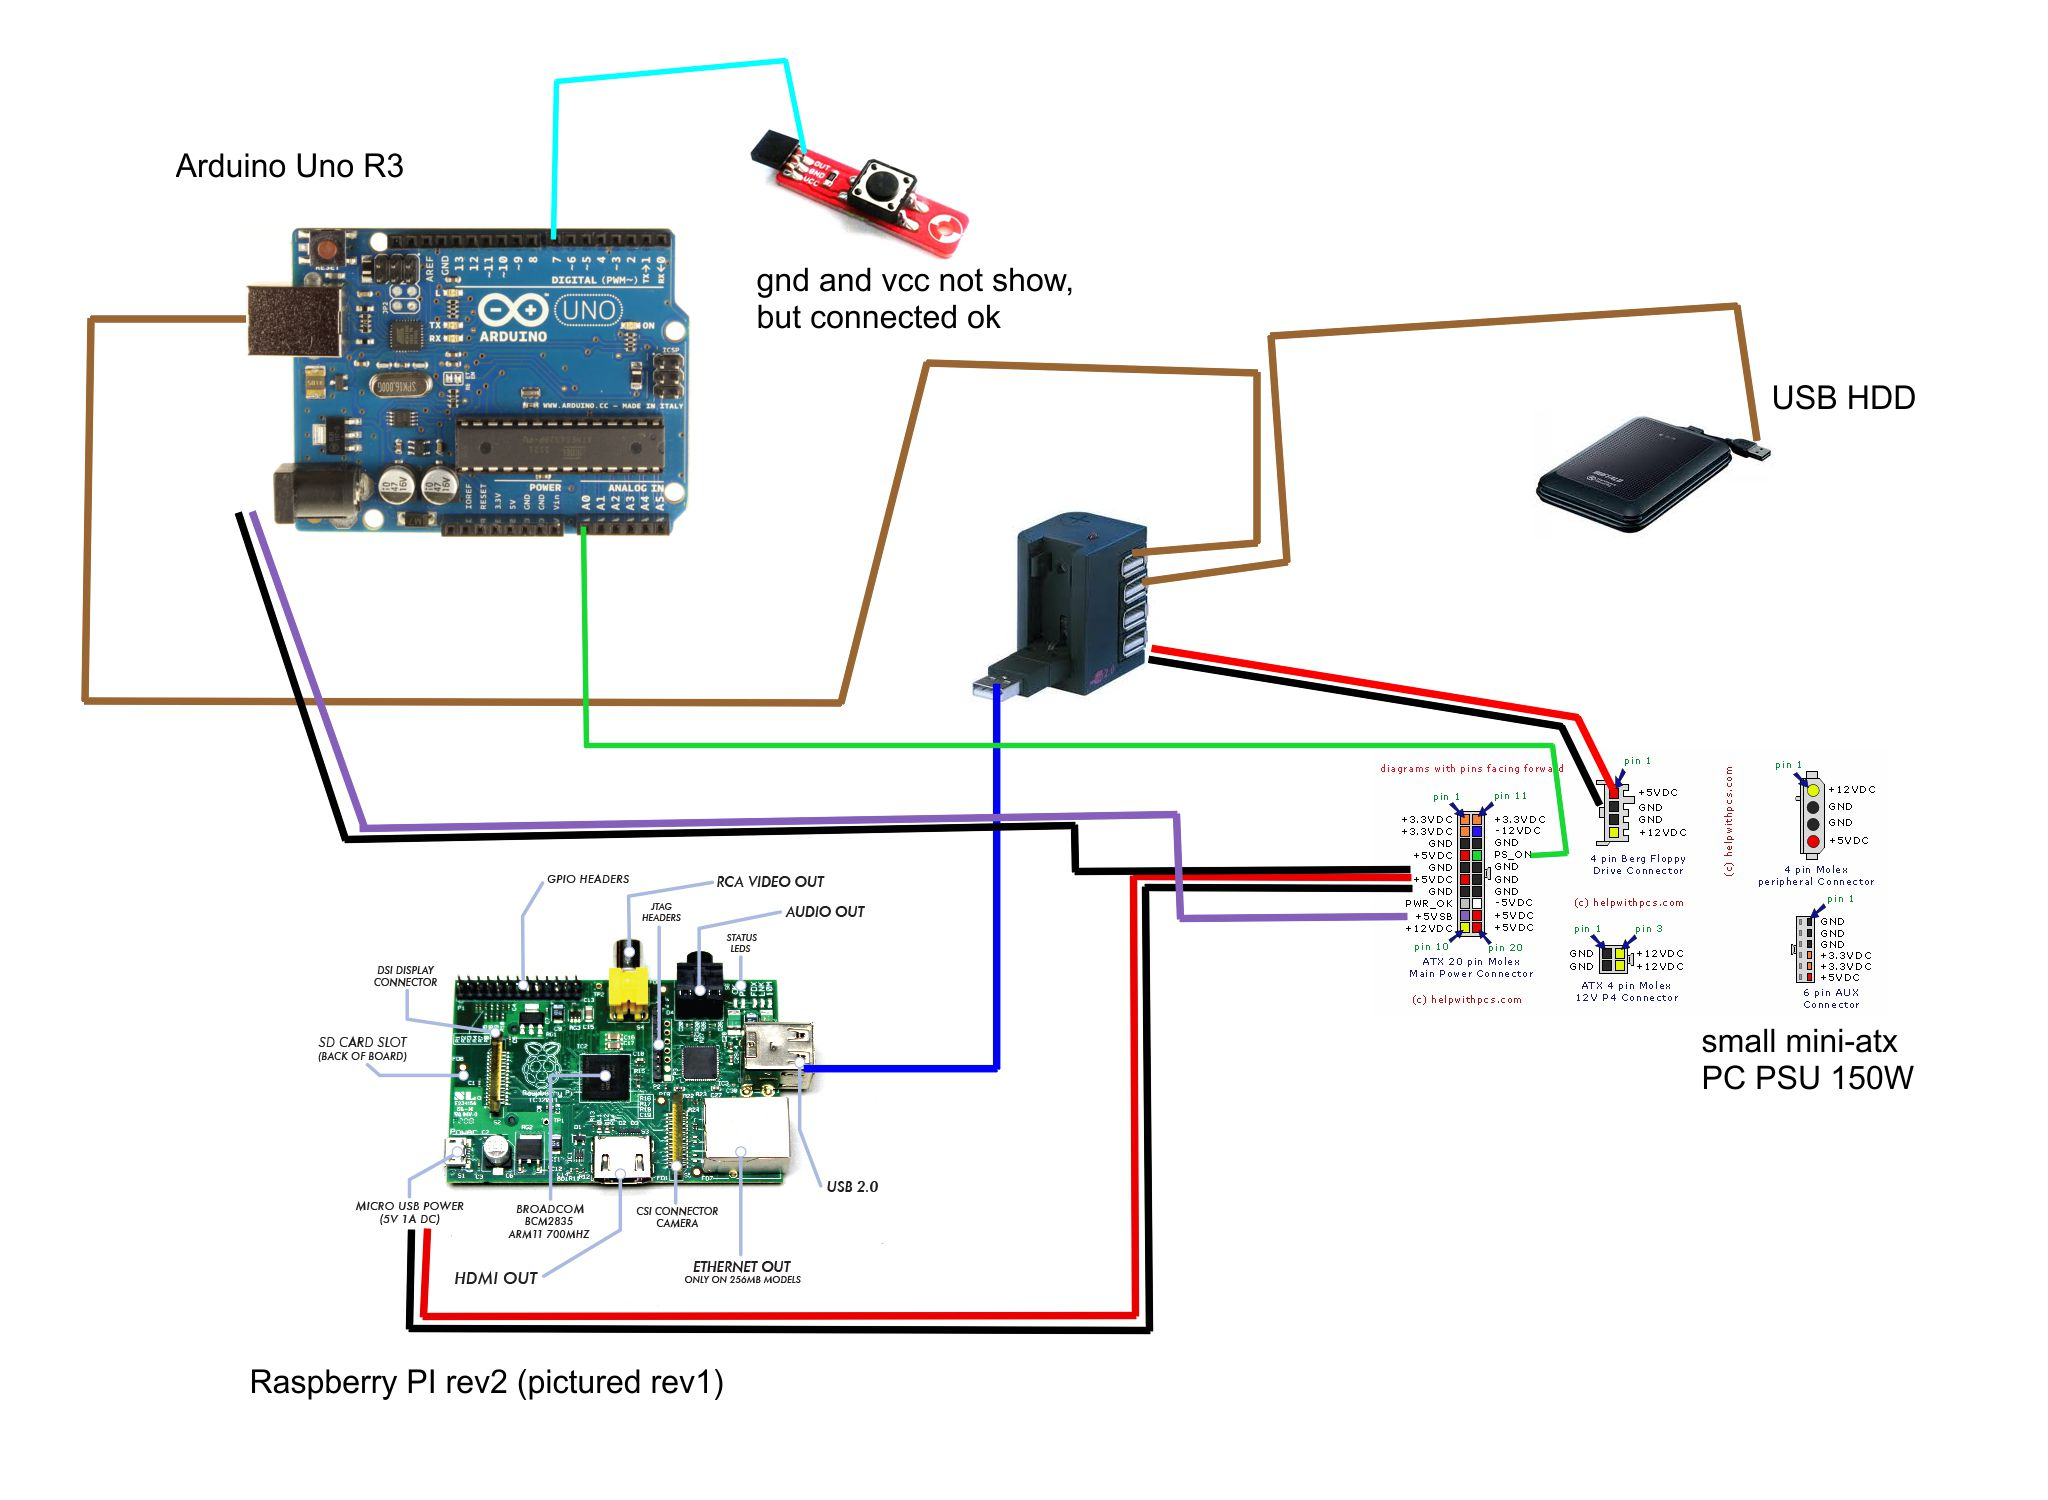 tattoo power supply wiring diagram 70cc quad bike how to connect together raspberry arduino